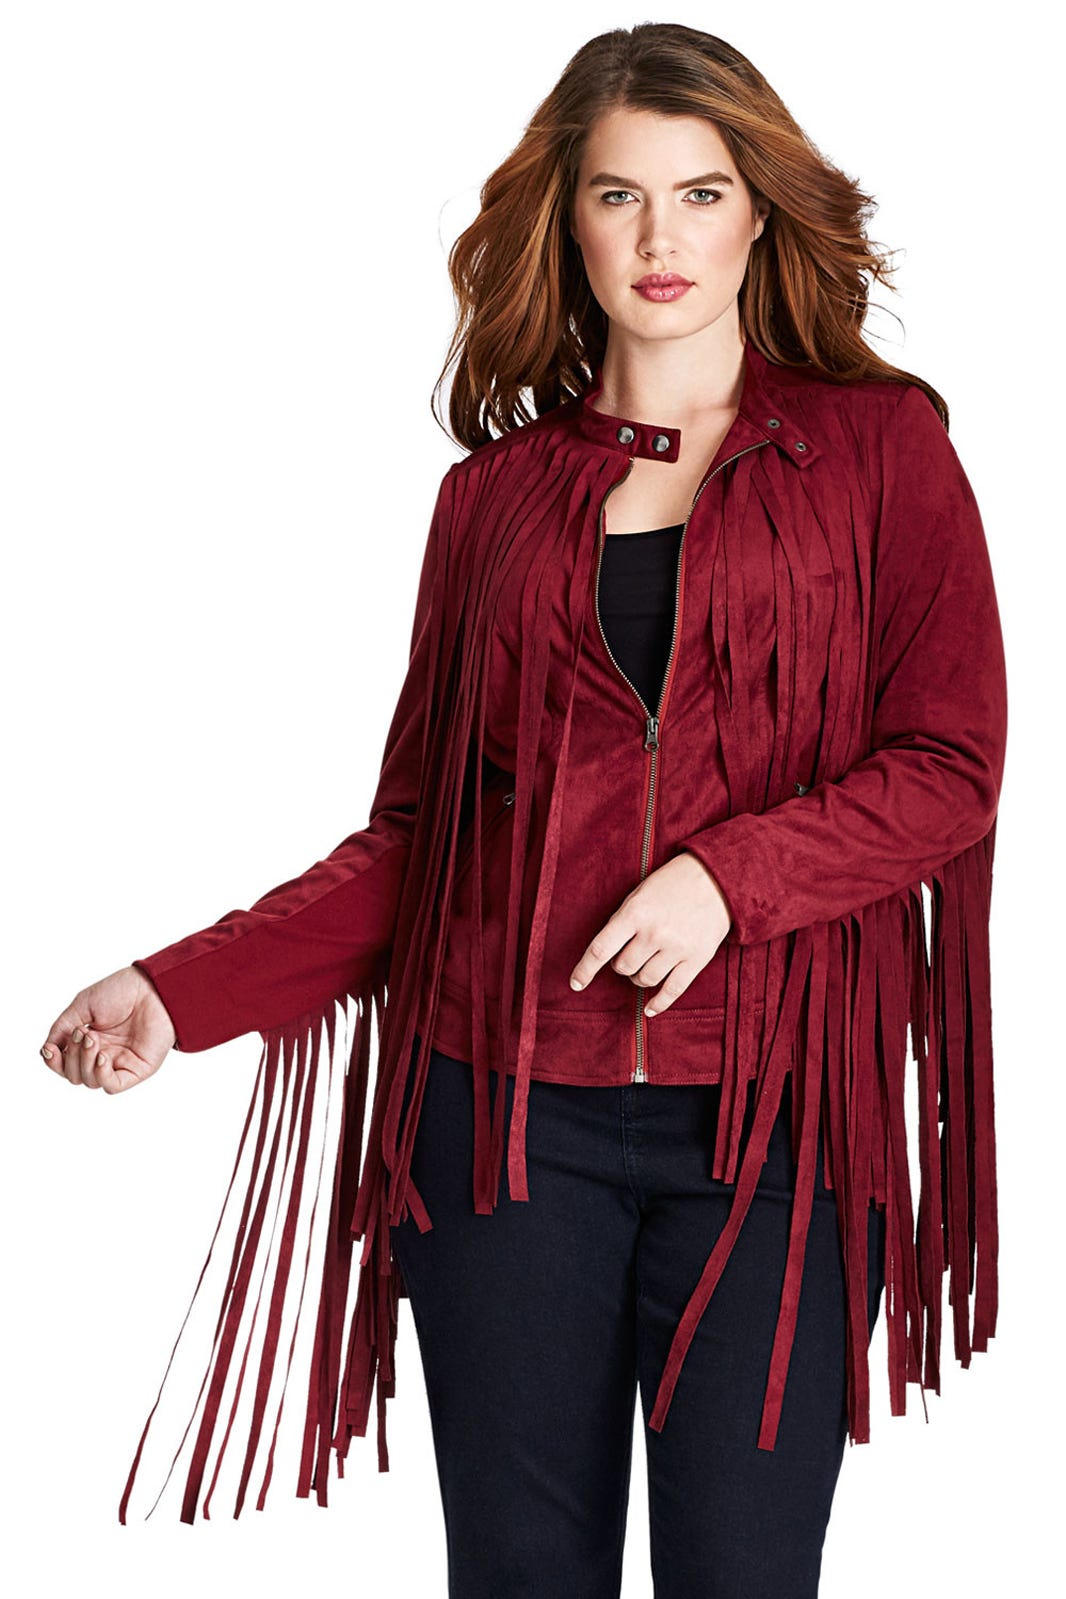 d0f2158e579 10 Fall Trends That Are Hitting Plus-Size Retailers